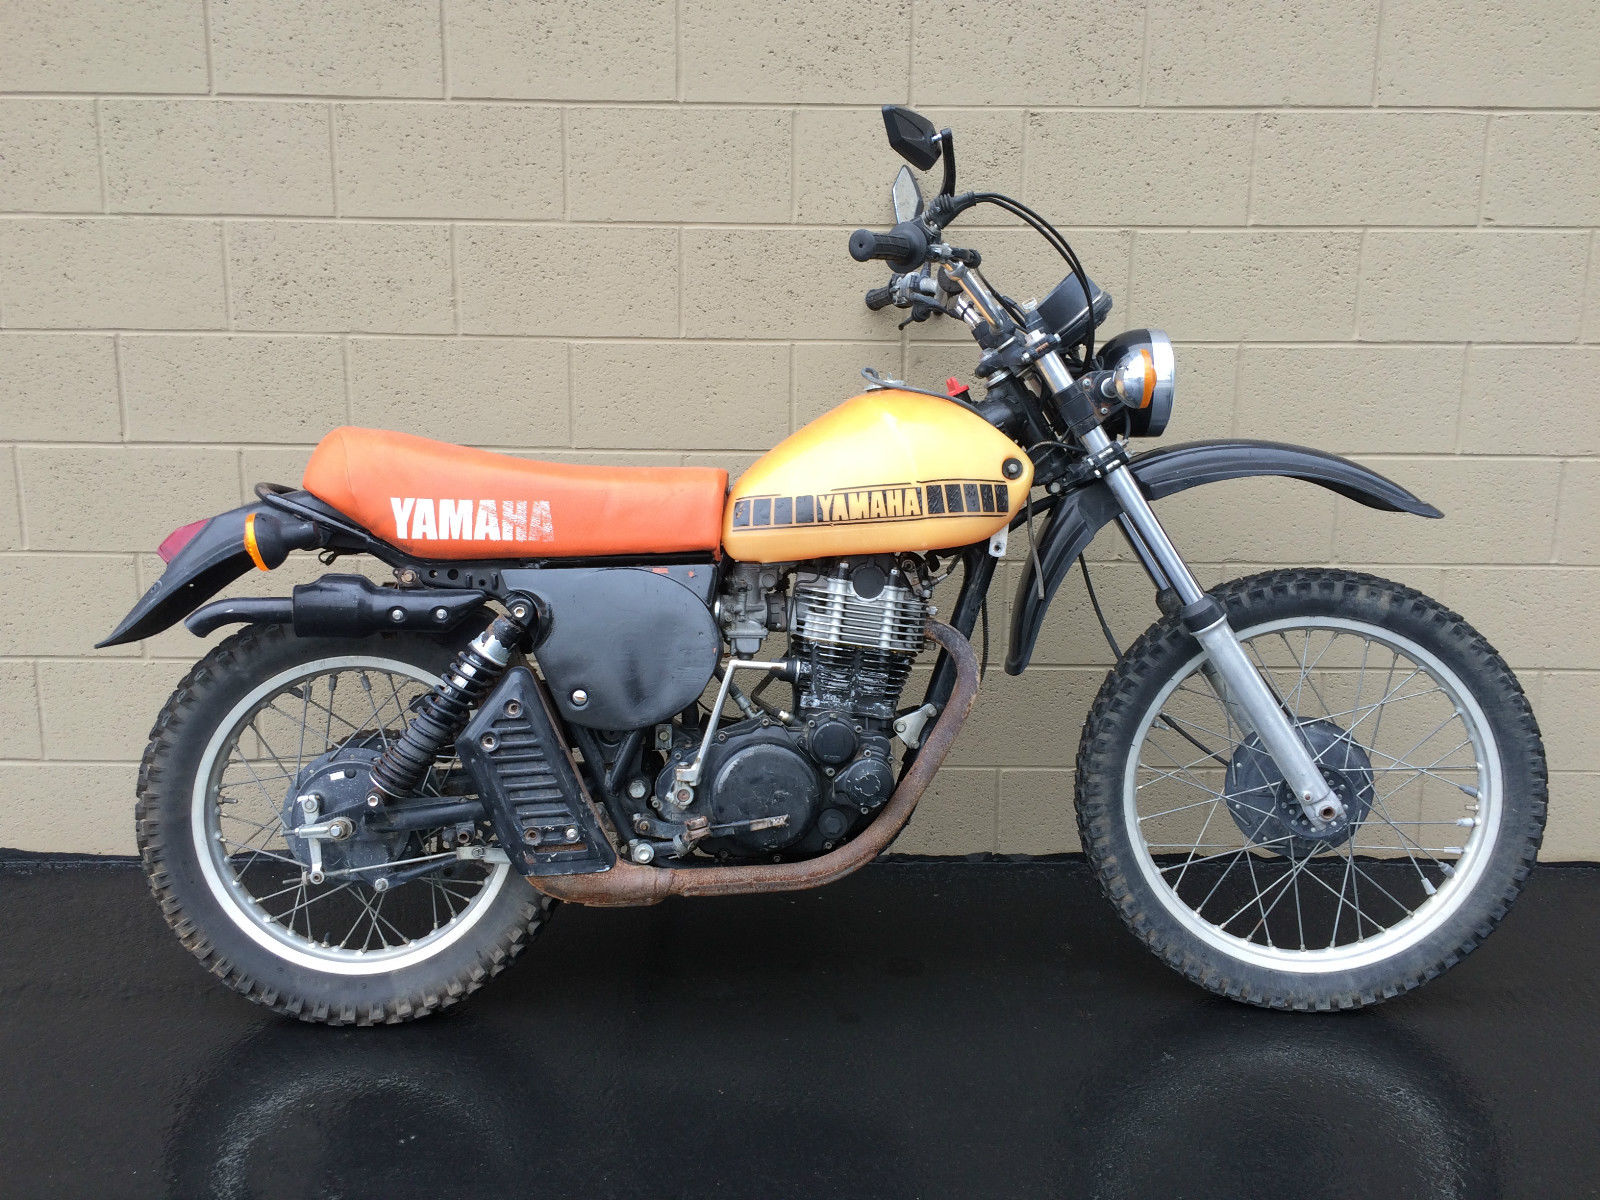 Yamaha Xt Vintage Thumper Yamaha Motorcycles For Sale on Yamaha Xt 500 Enduro